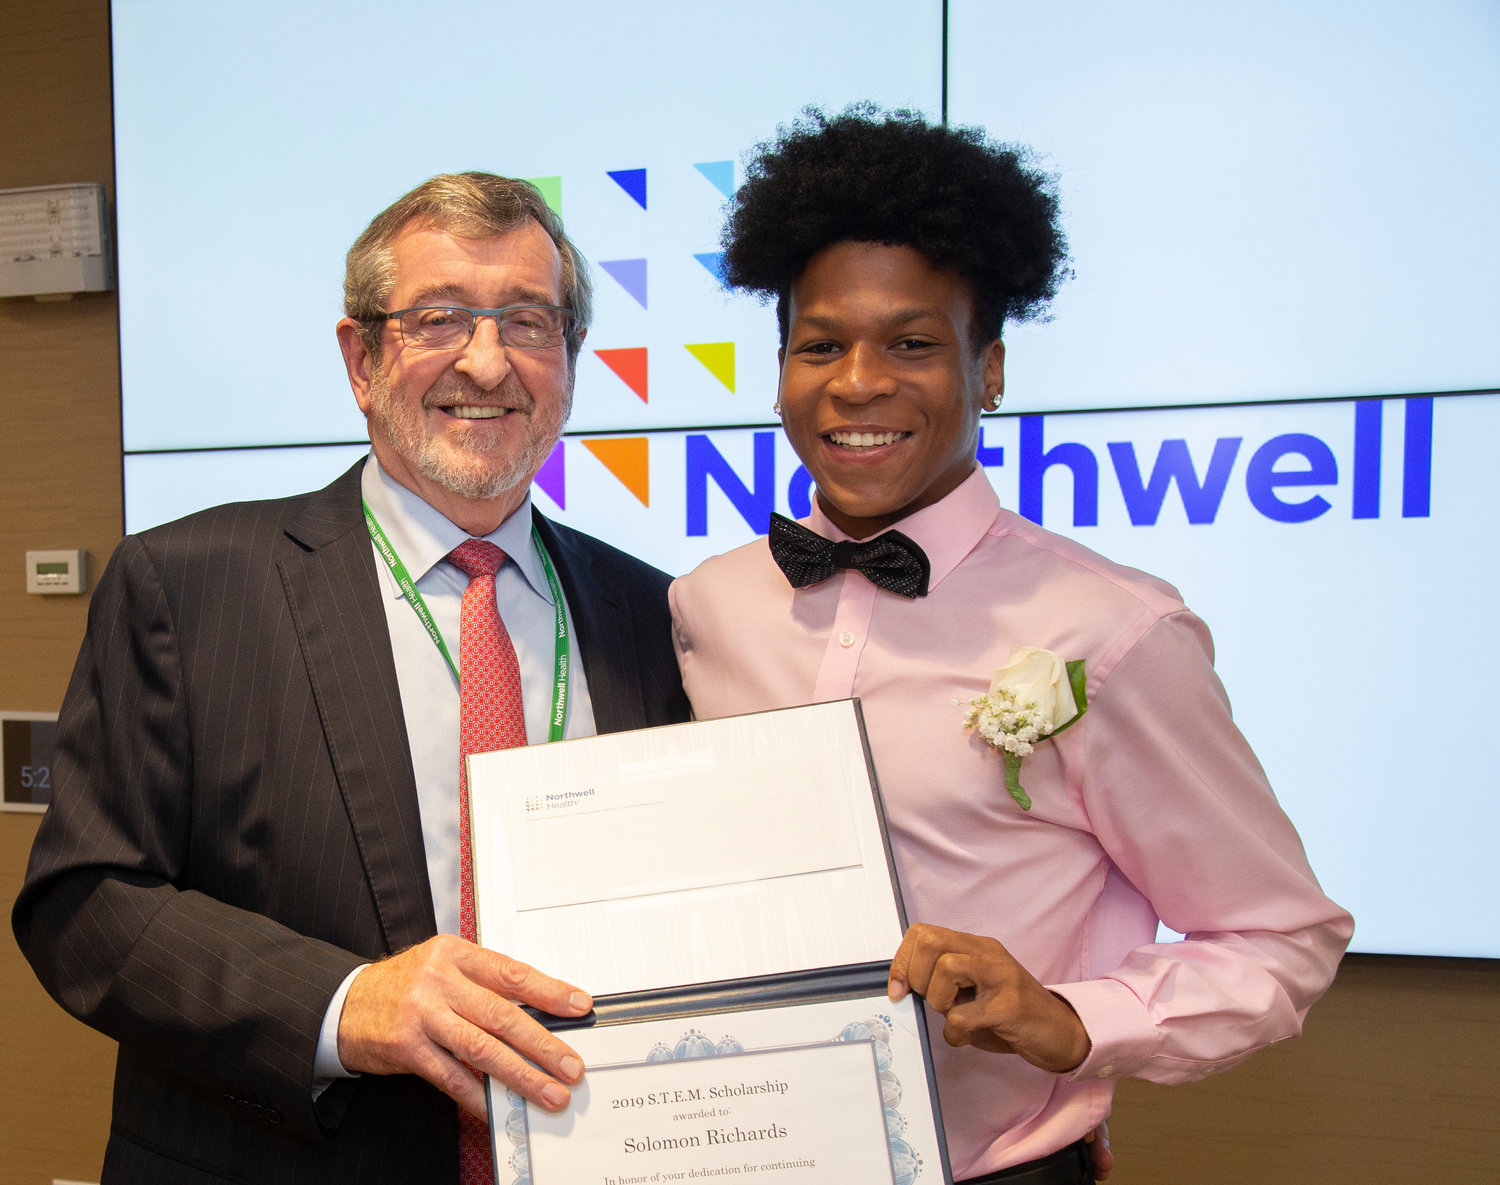 Valley Streamer Solomon Richards, right, with Northwell Health president and chief executive officer Michael Dowling. Richards received a $7,500 scholarship from the network.